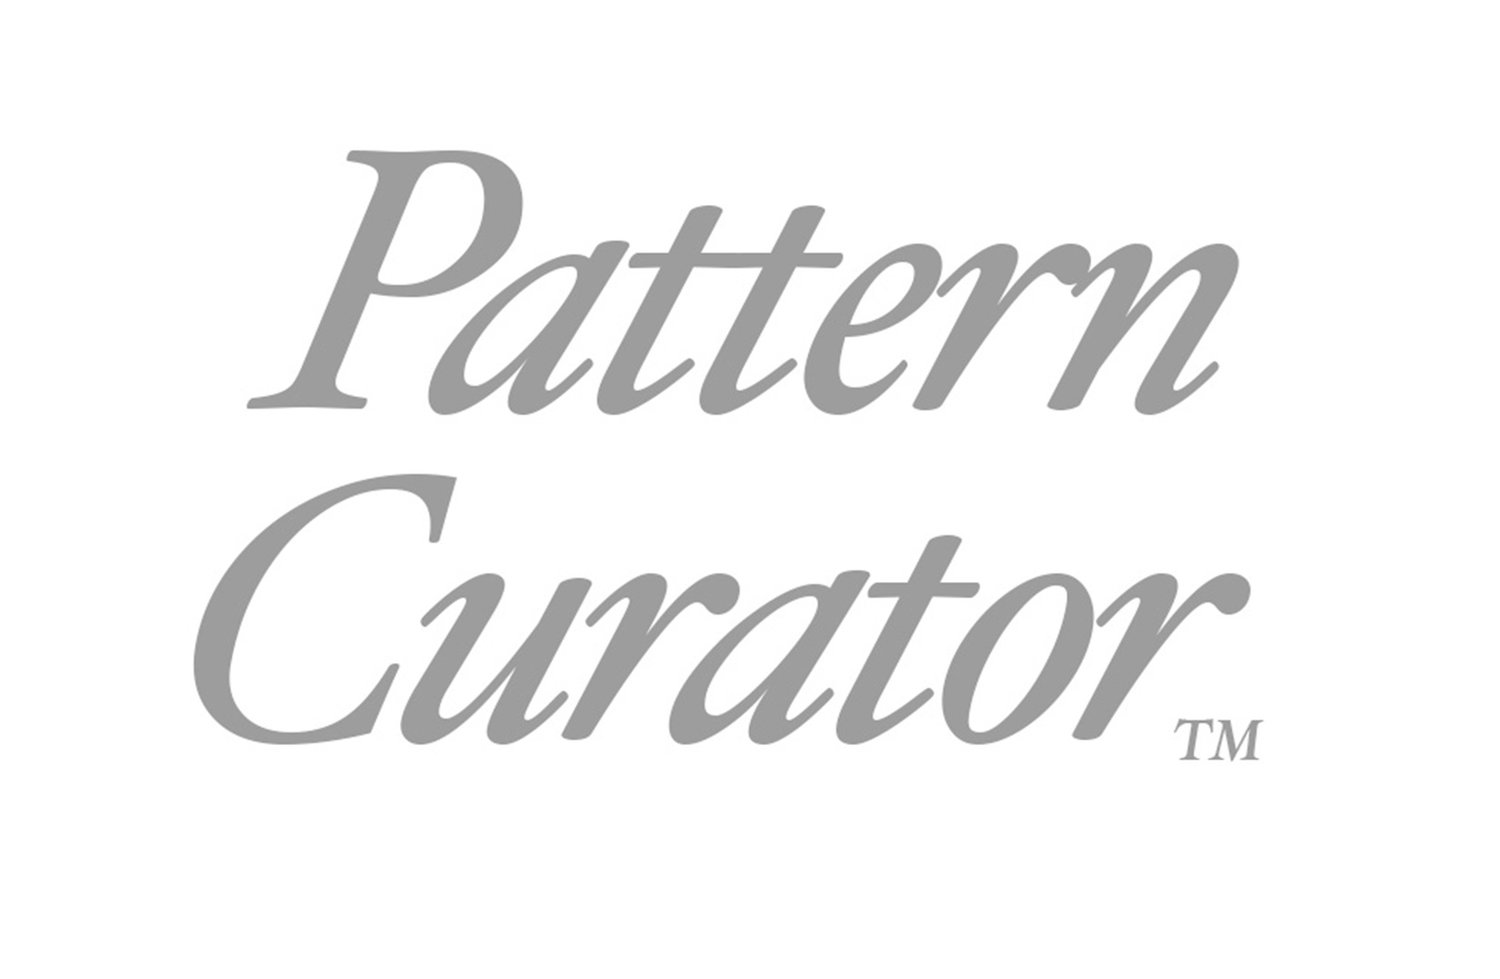 Pattern Curator